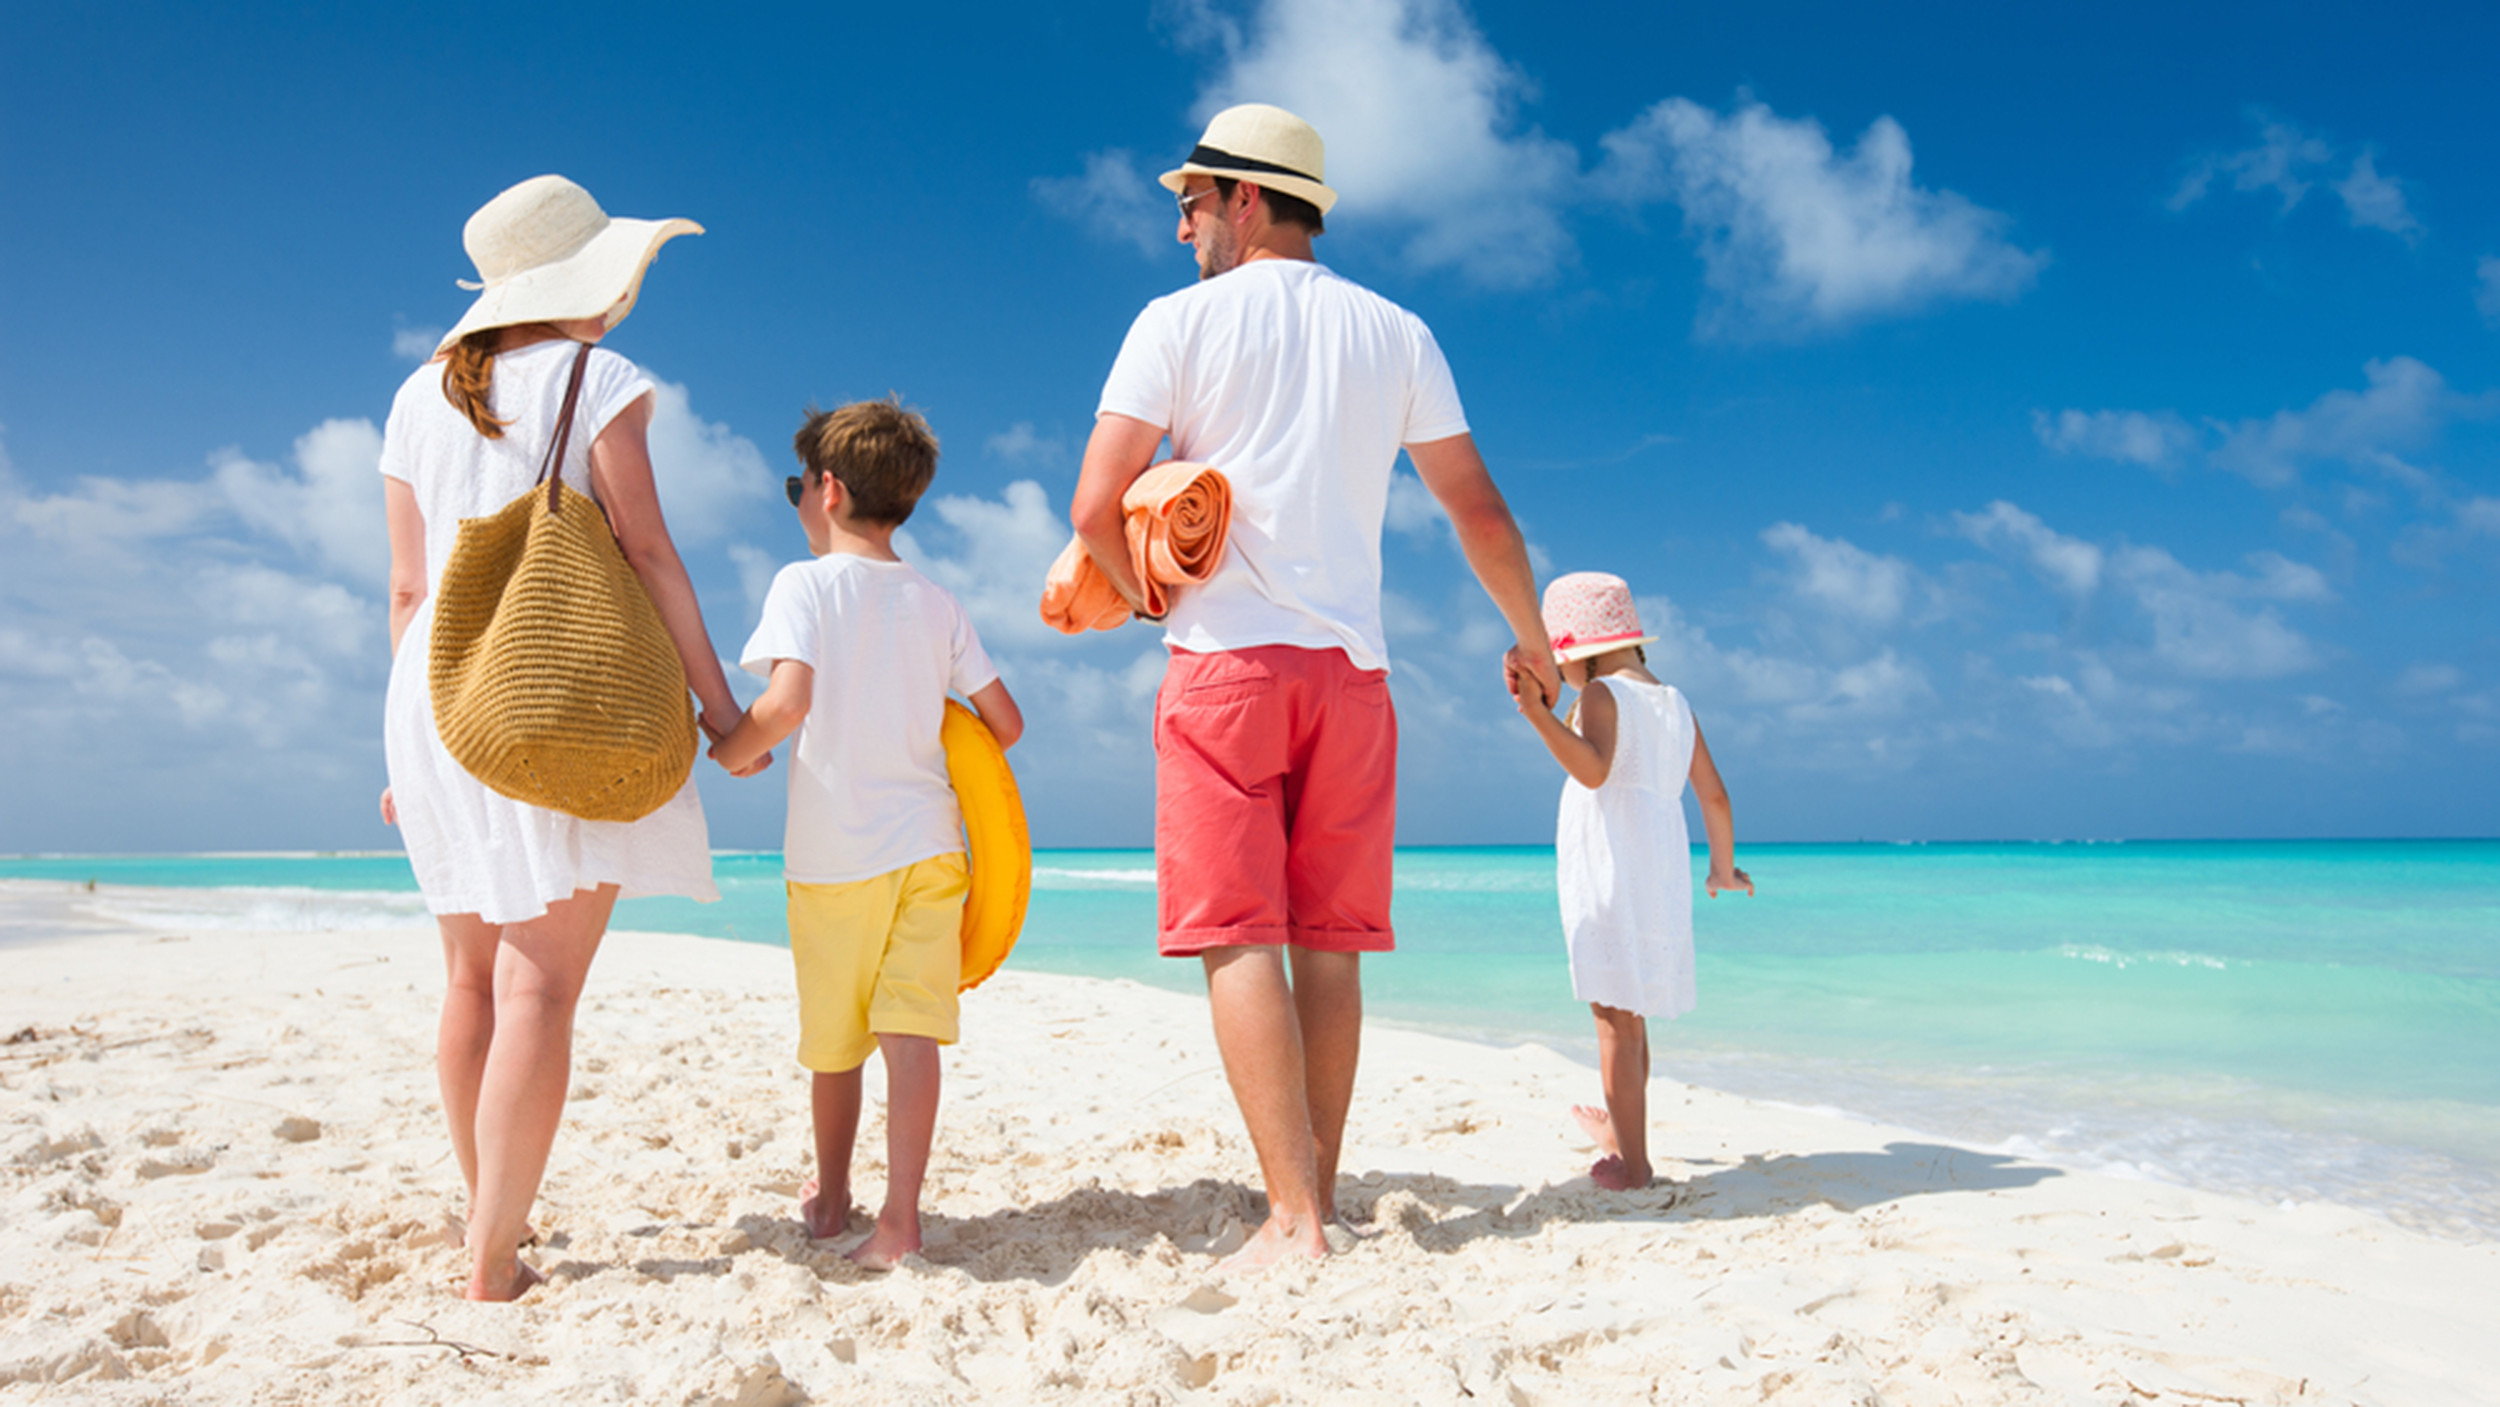 What Is The Importance Of Taking A Vacation?